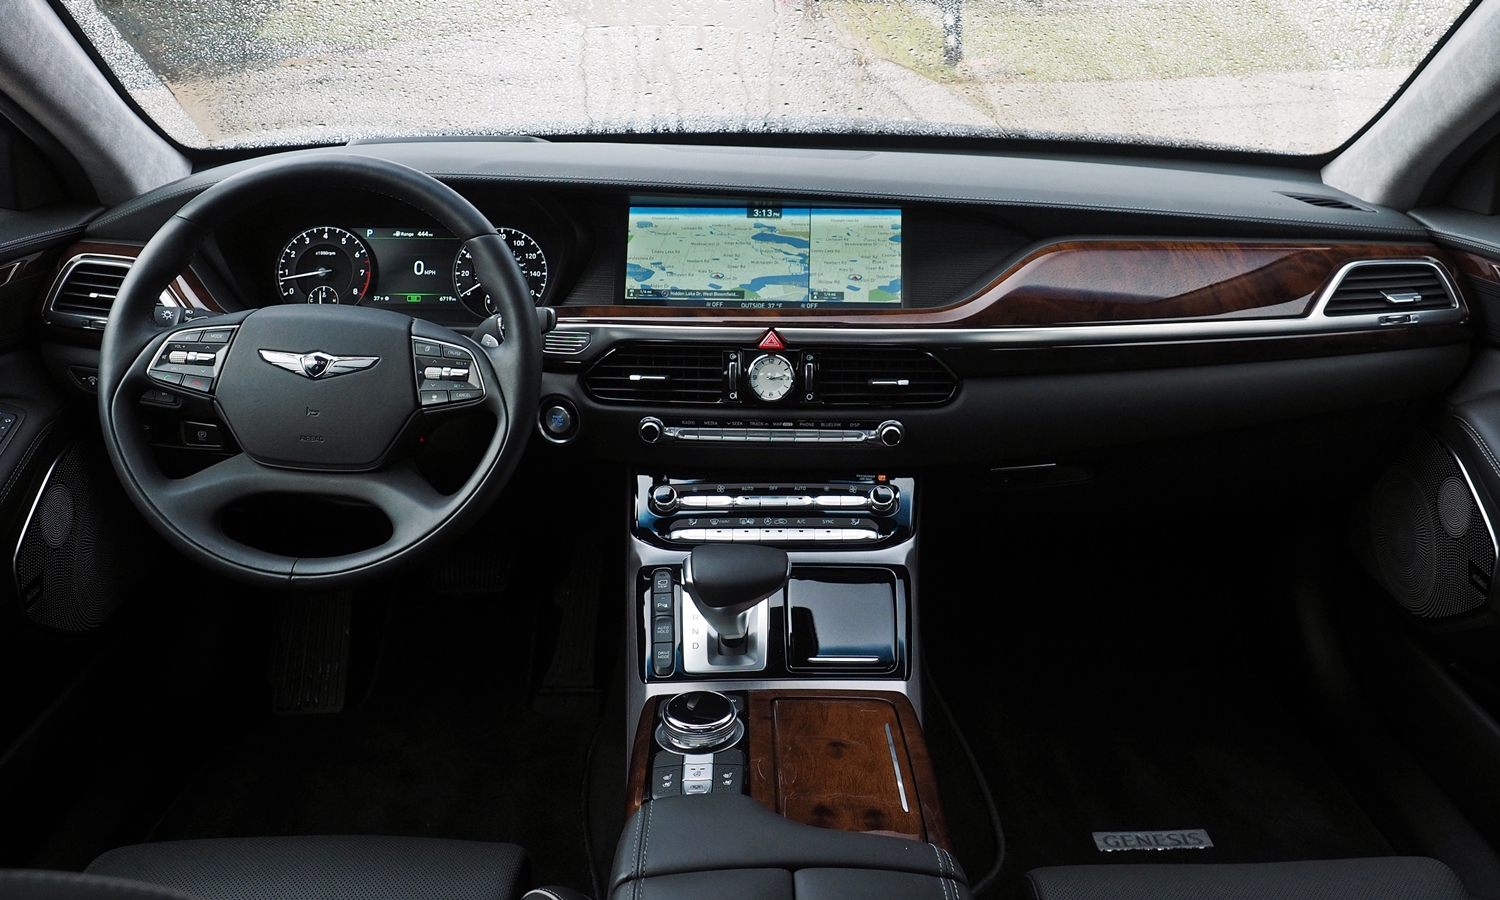 Genesis G90 Photos: 2017 Genesis G90 instrument panel full width